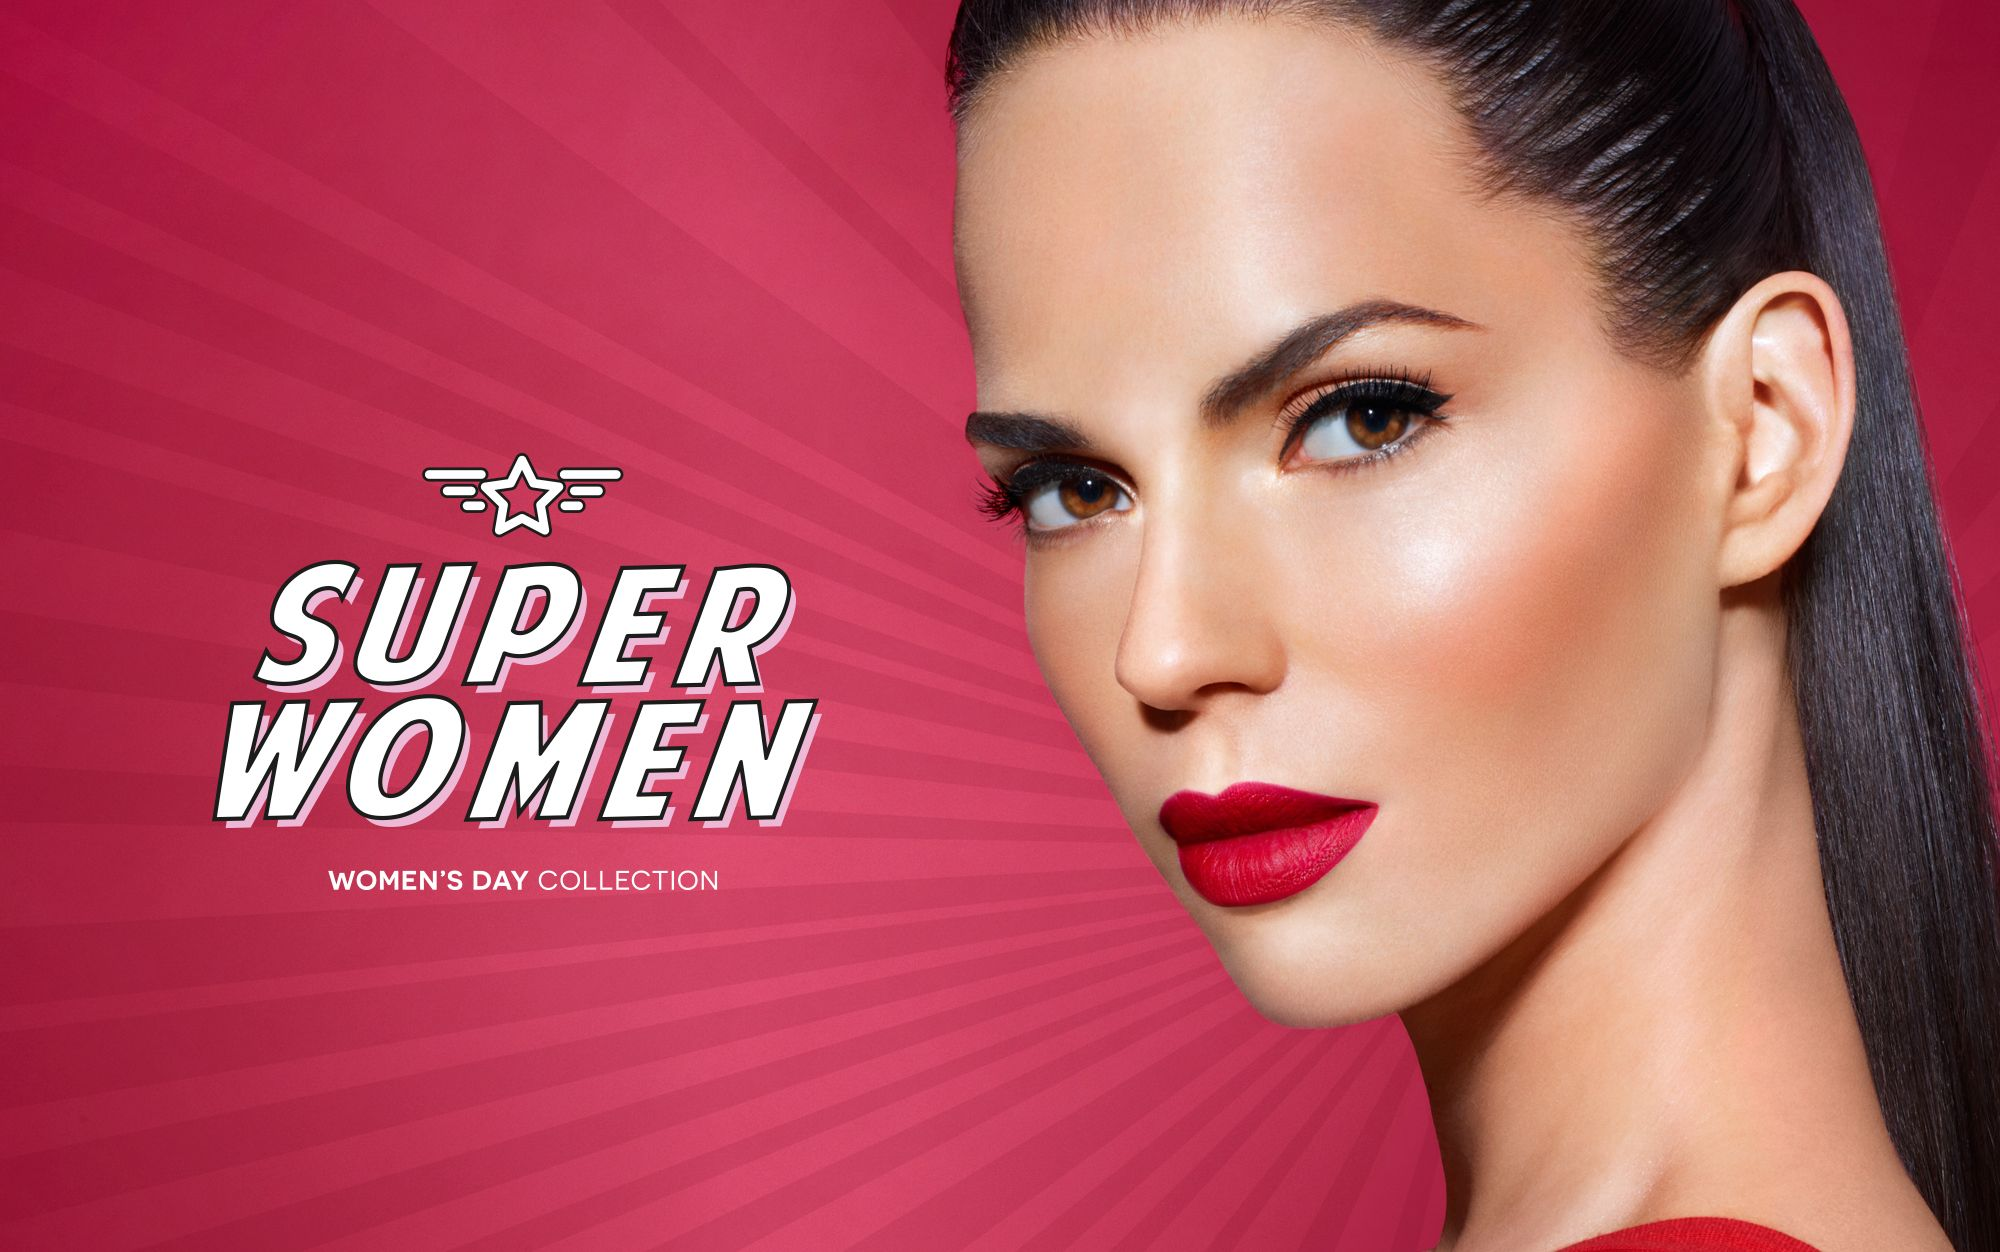 SUPERWOMEN Women's day collection